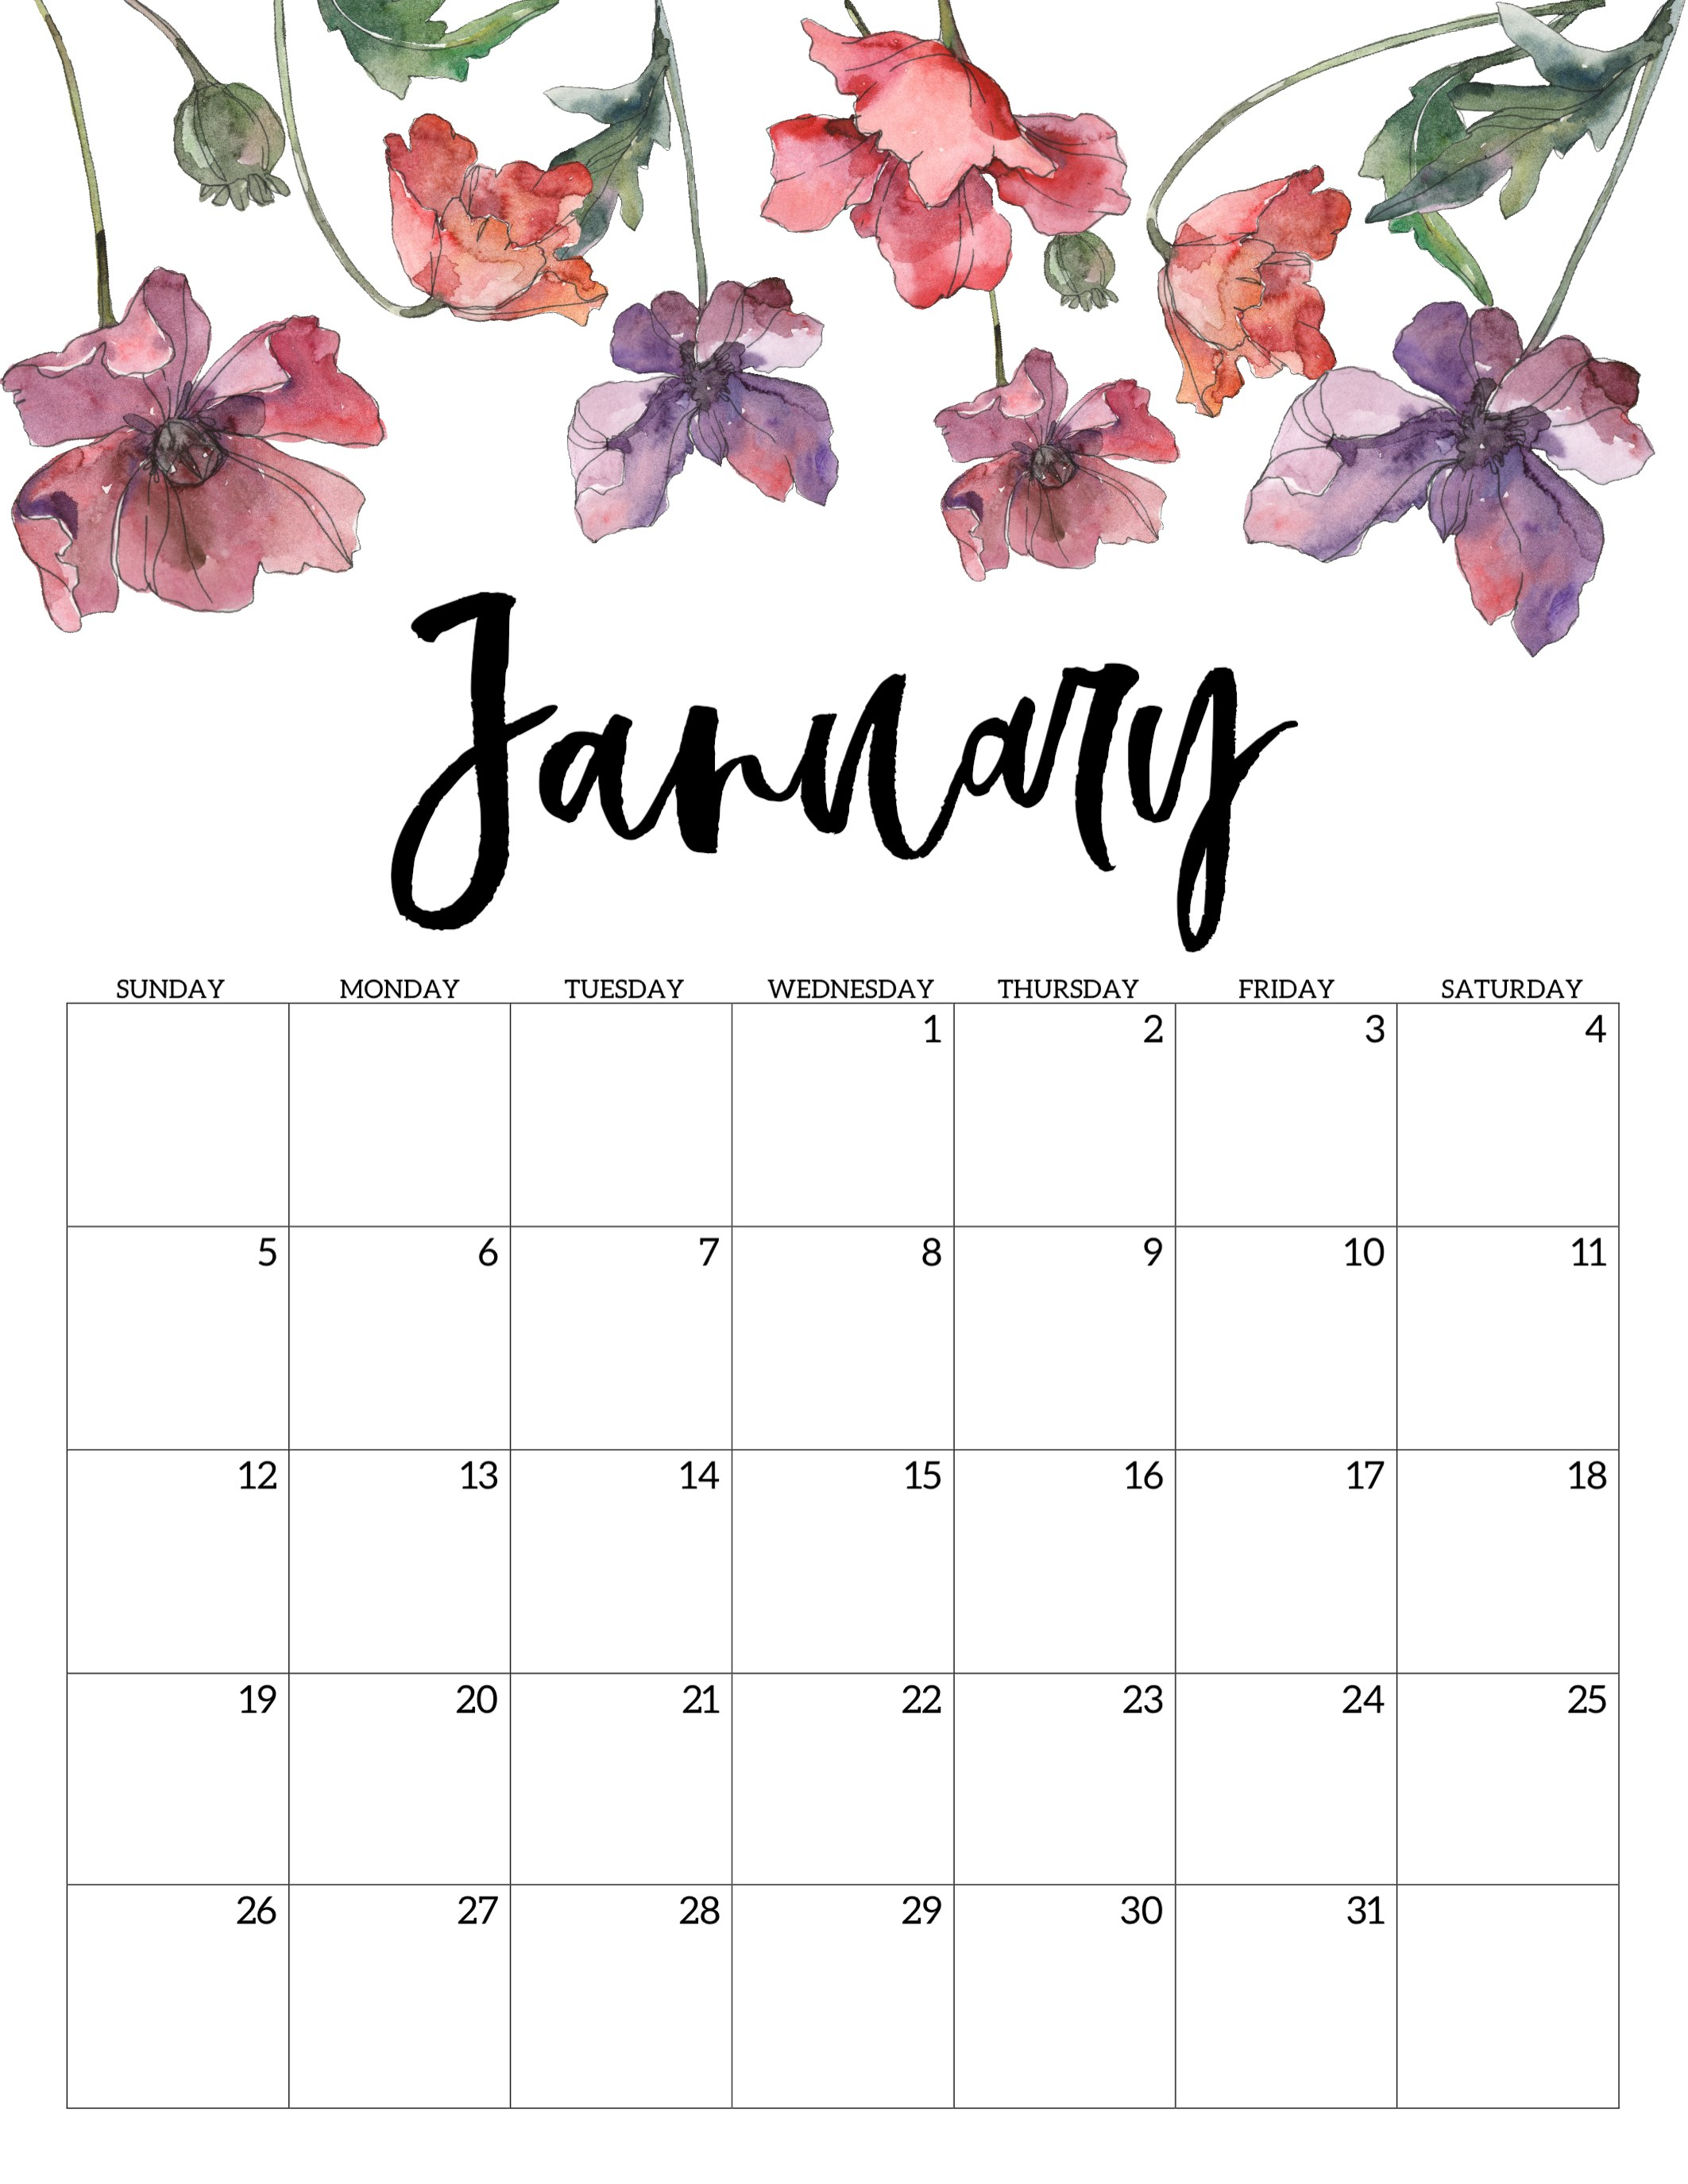 2020 Free Printable Calendar - Floral - Paper Trail Design with regard to Free 2020Printable Calendars Without Downloading